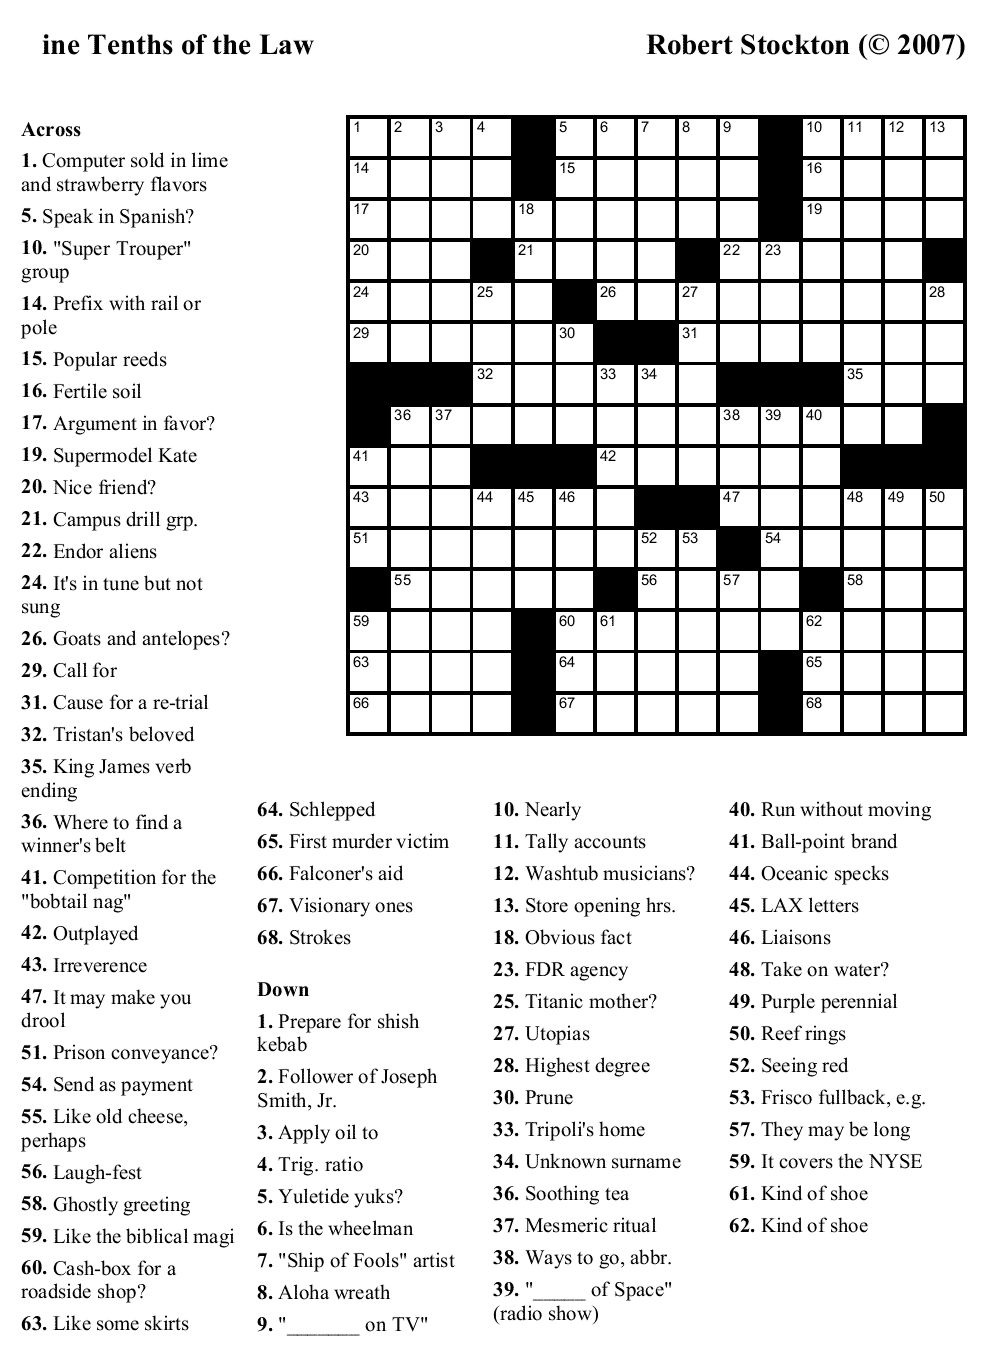 Crossword Puzzles Printable - Yahoo Image Search Results | Crossword - Printable Crossword Puzzles Themed